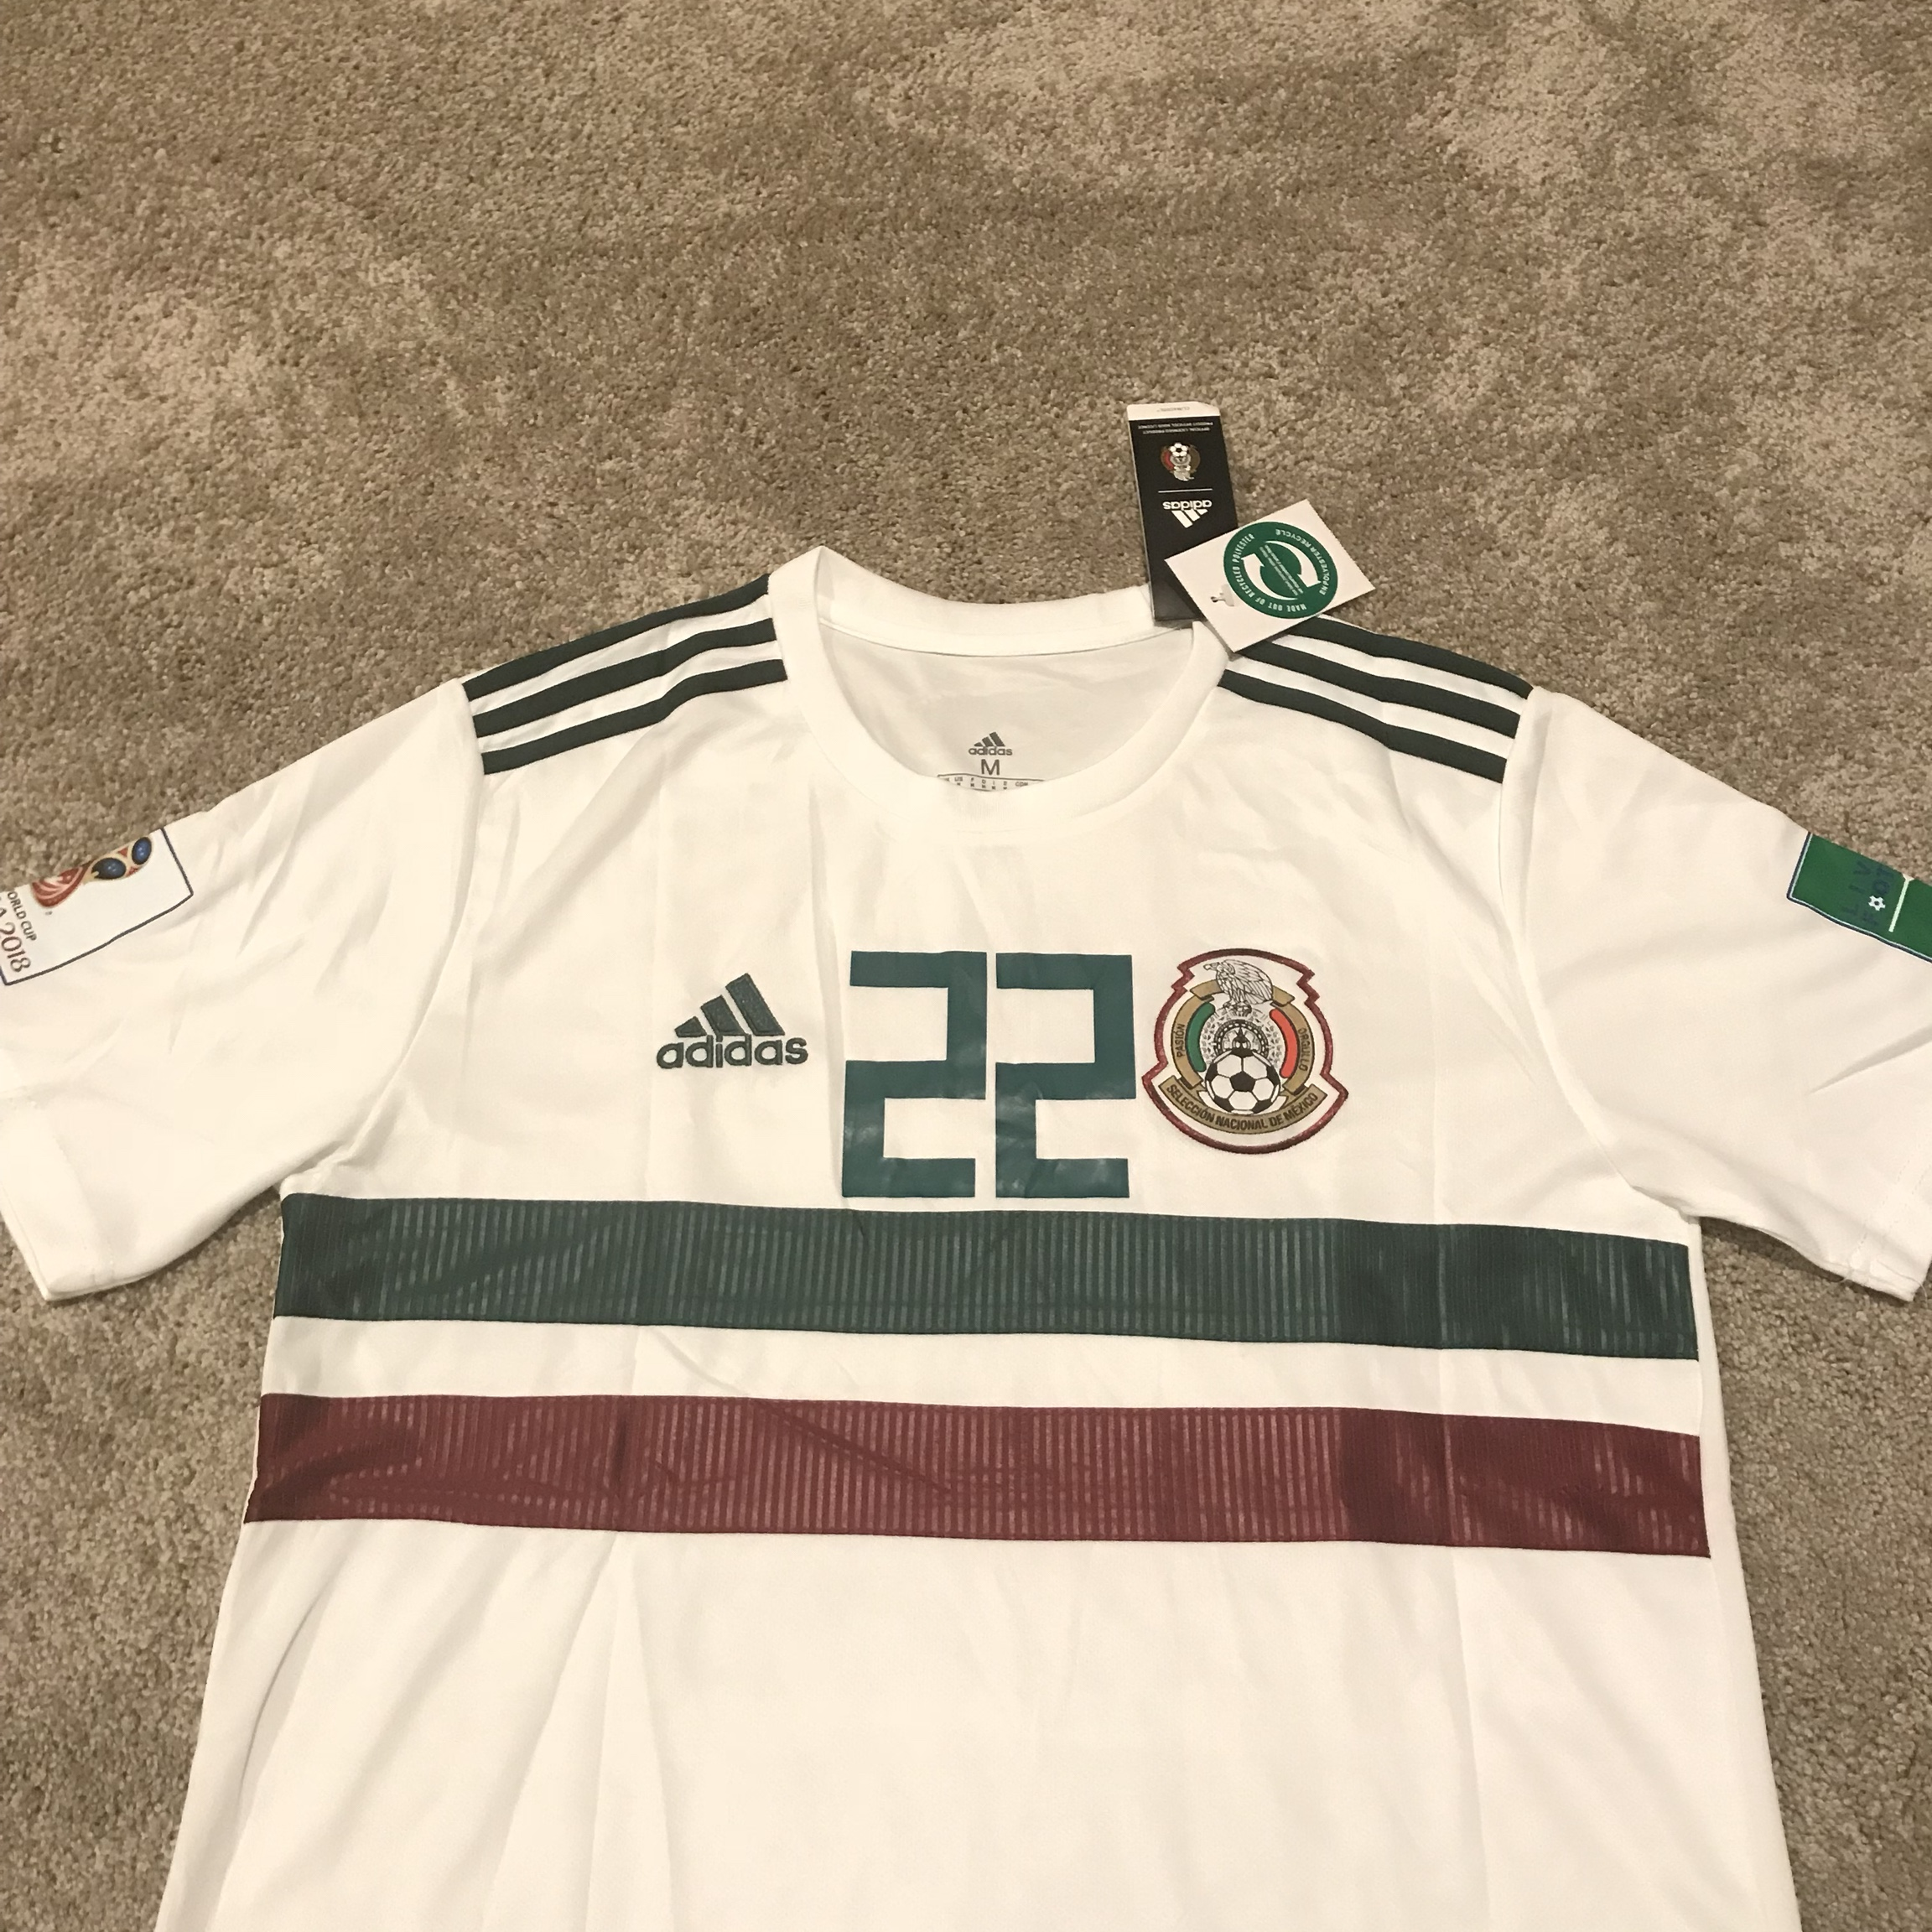 buy popular 7b5b5 52f8c Hirving Lozano Mexico World Cup White Jersey New... - Depop